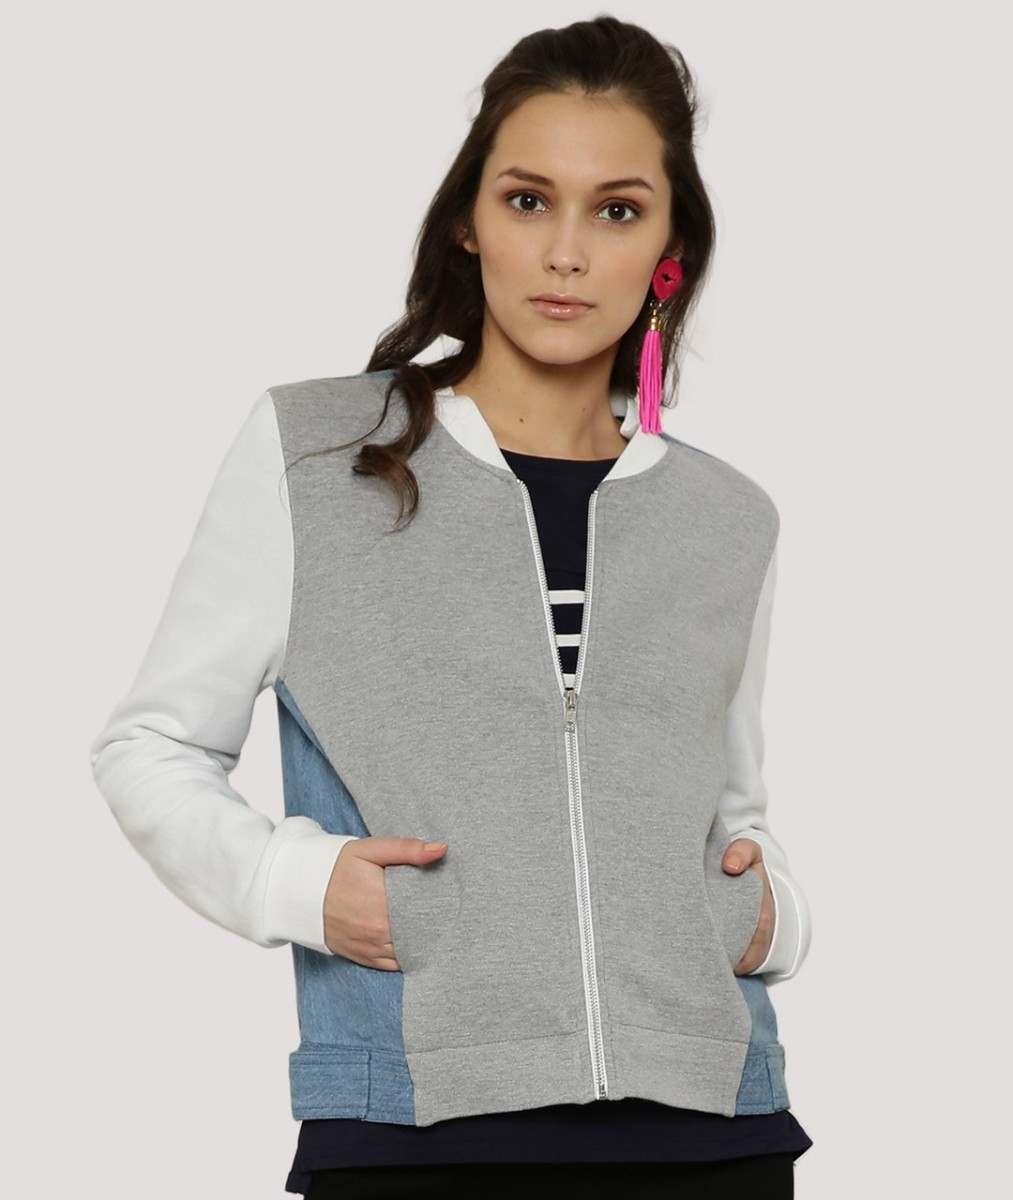 Koovs Winter fleece jacket for autumn